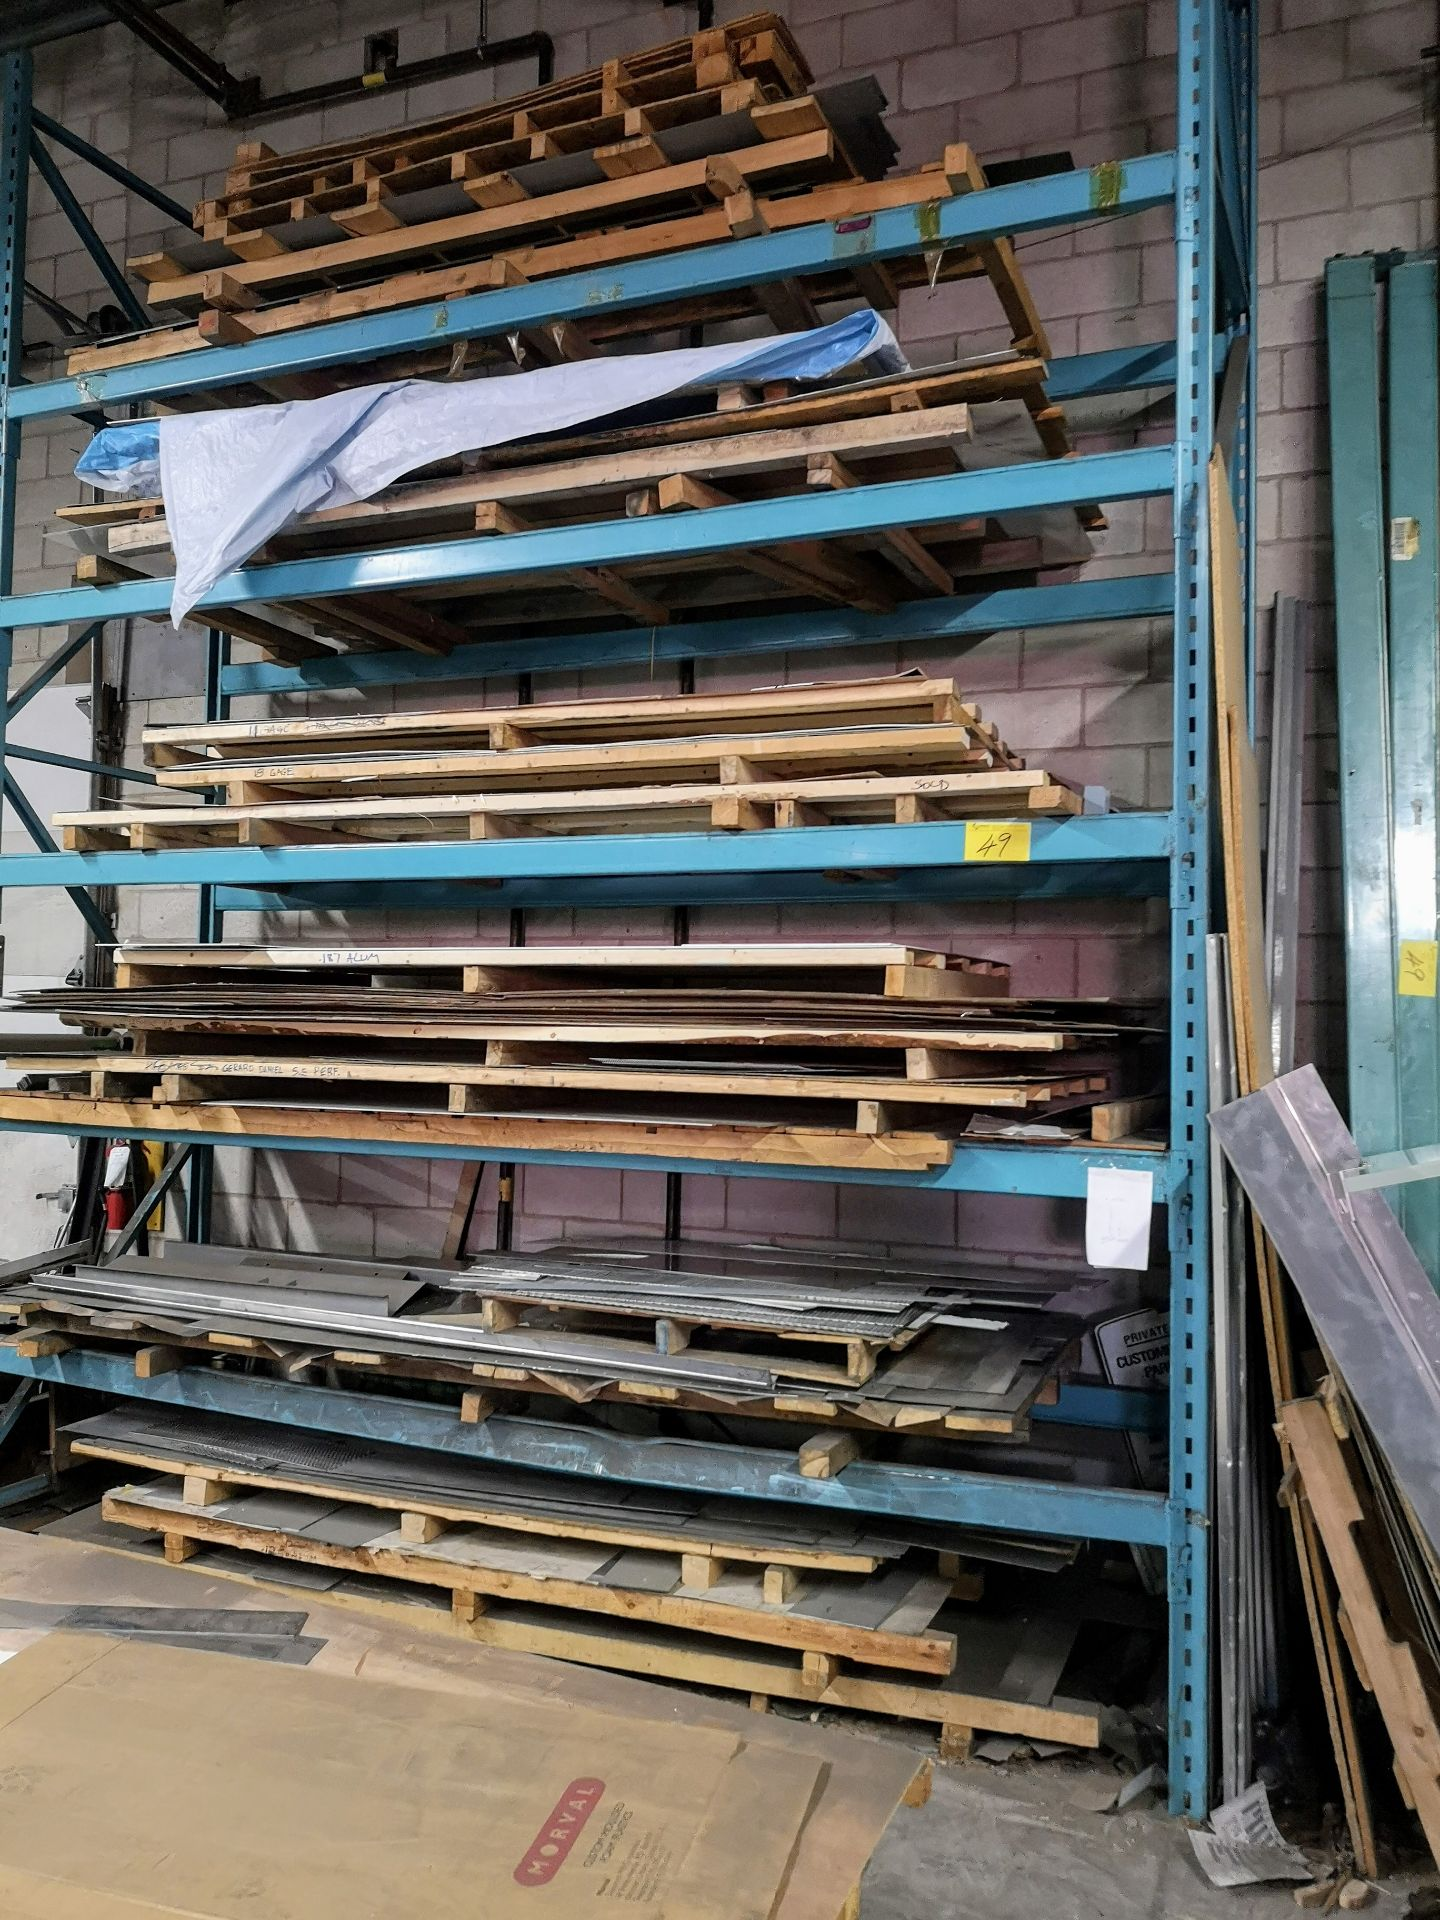 "Lot 49 - LOT ASST. PALLET RACKING W/ (6) UPRIGHTS 16' X 42"" W/ (40) CROSSBEAMS 12' X 4"" AND (10) CROSSBEAMS"